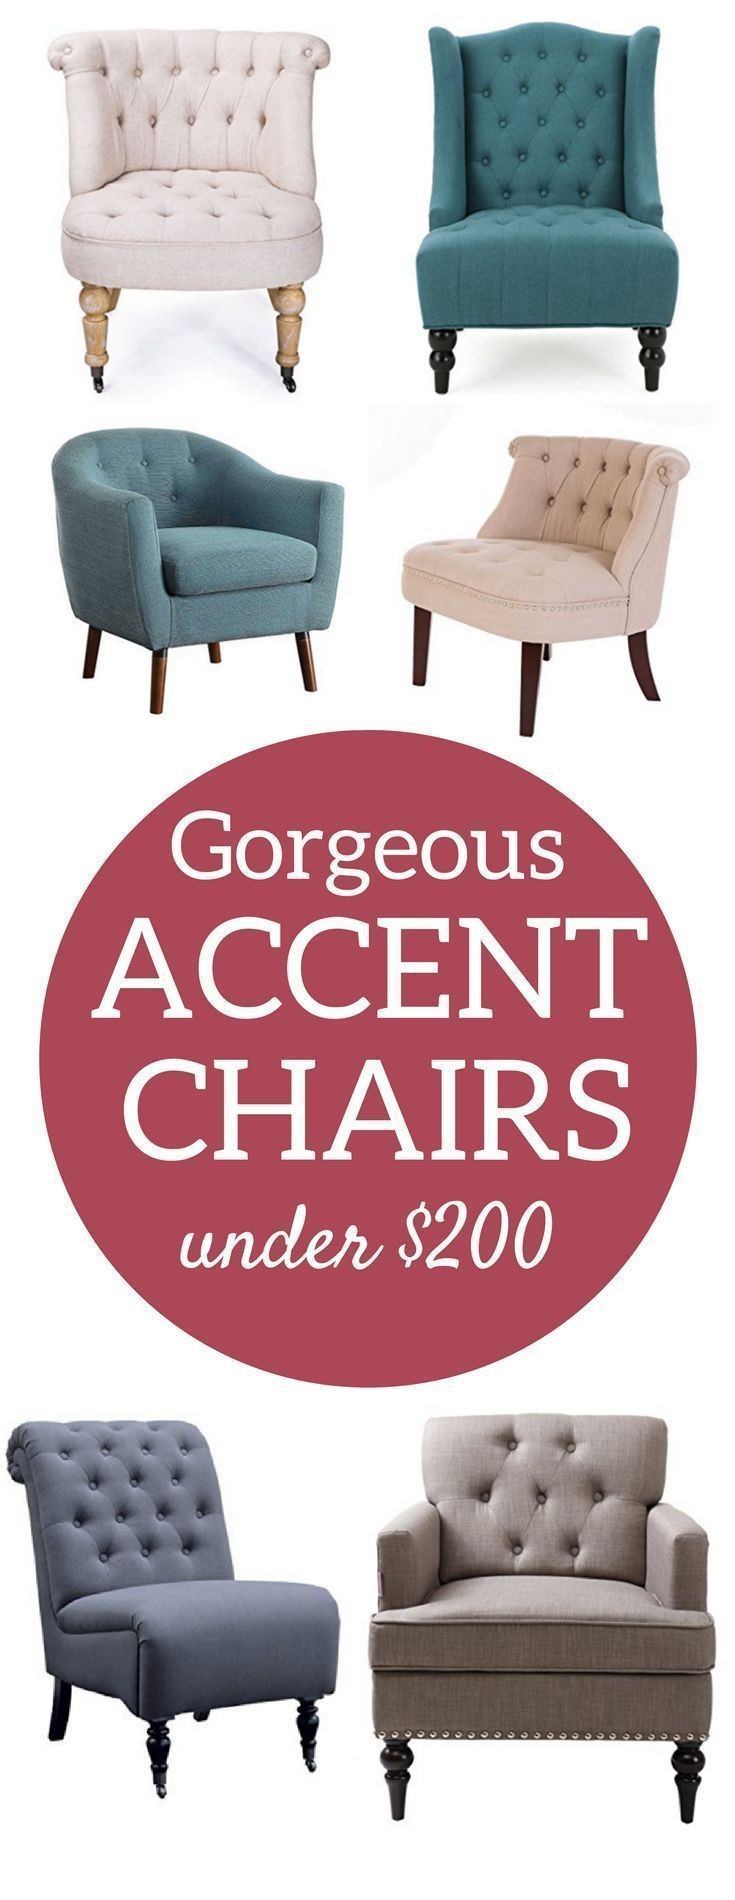 Timeless tufted accent chairs fixer upper and farmhouse style side chairs all for under 200 a brick home